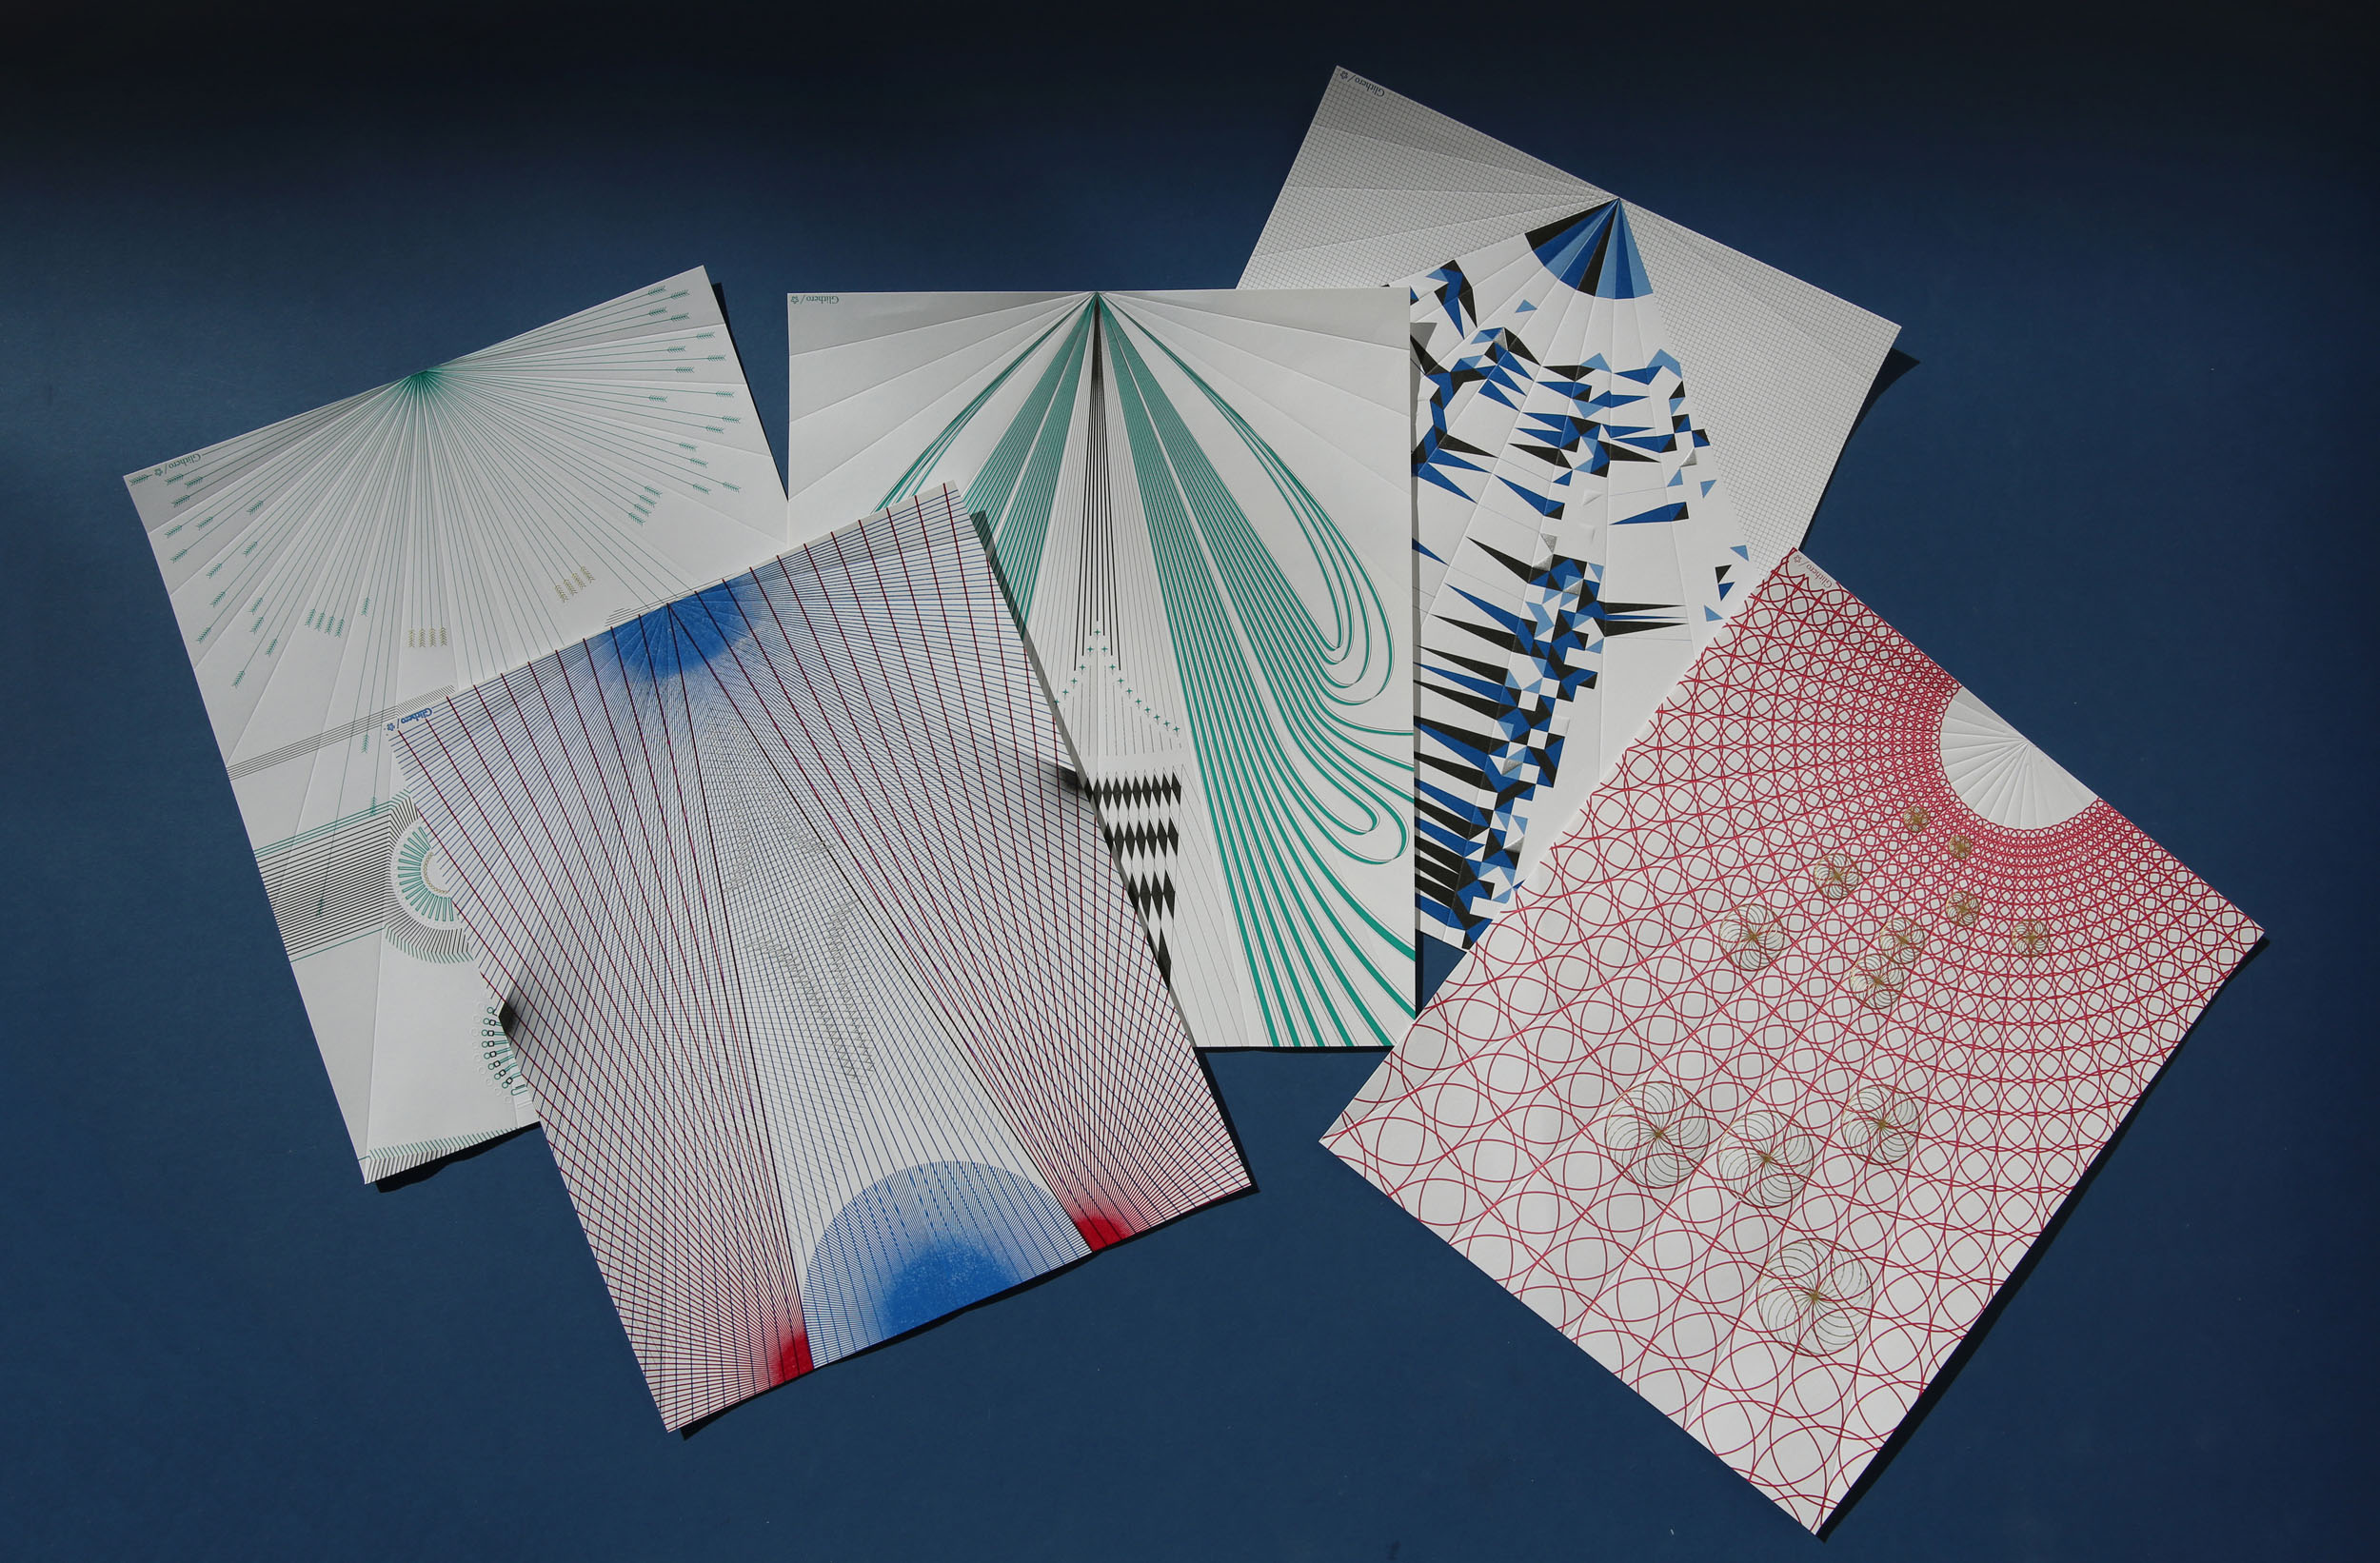 A set of unfolded Paper Planes